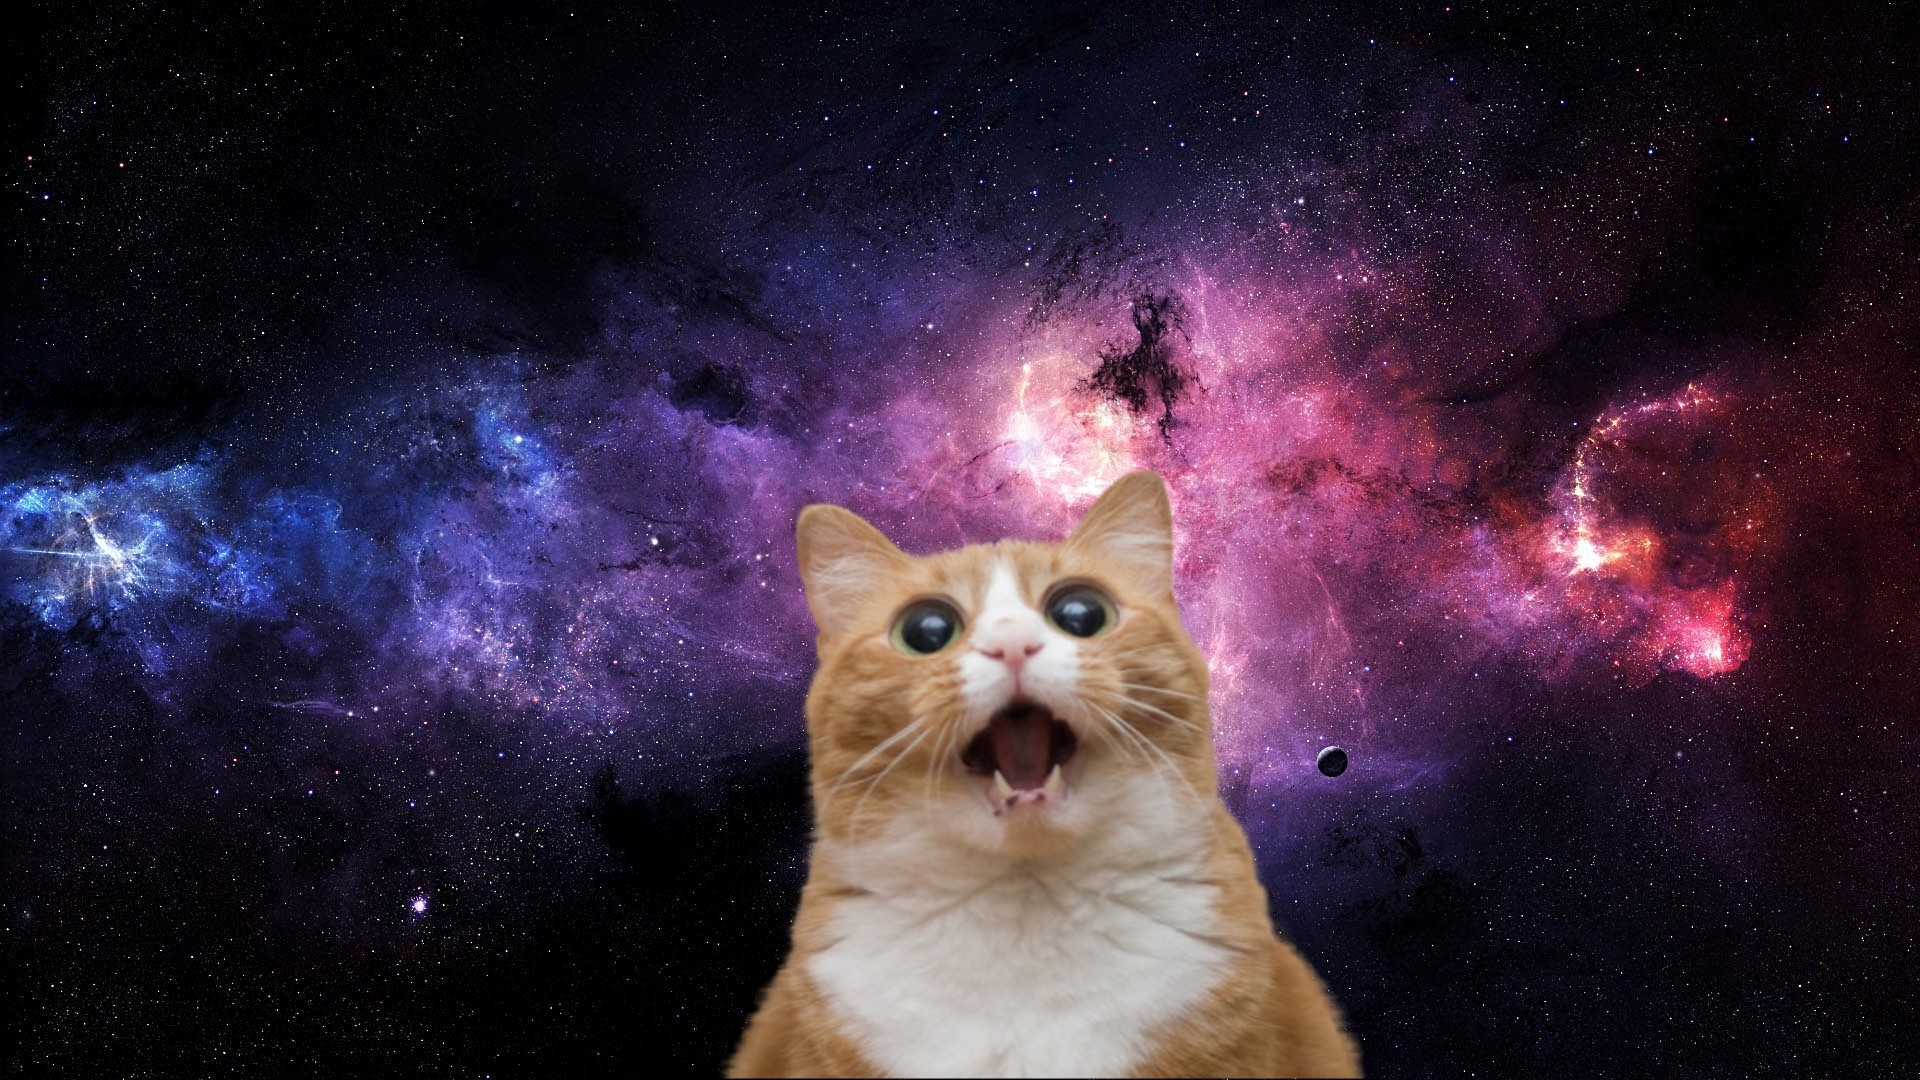 Wallpaper crazy cats and dogs 57 images - Space kitty wallpaper ...